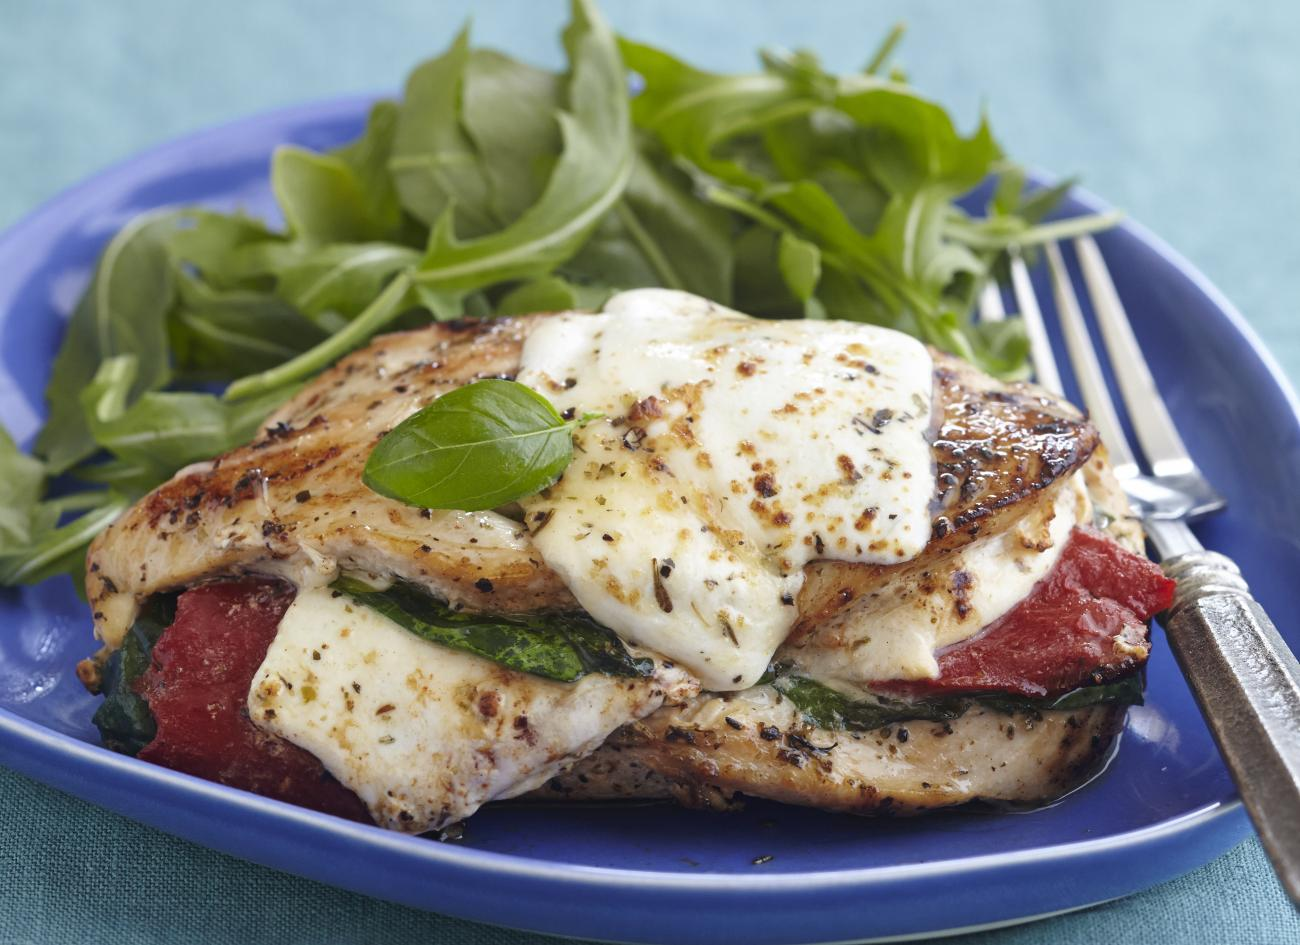 Recipe for Roasted Red Pepper, Mozzarella, and Basil-Stuffed Chicken